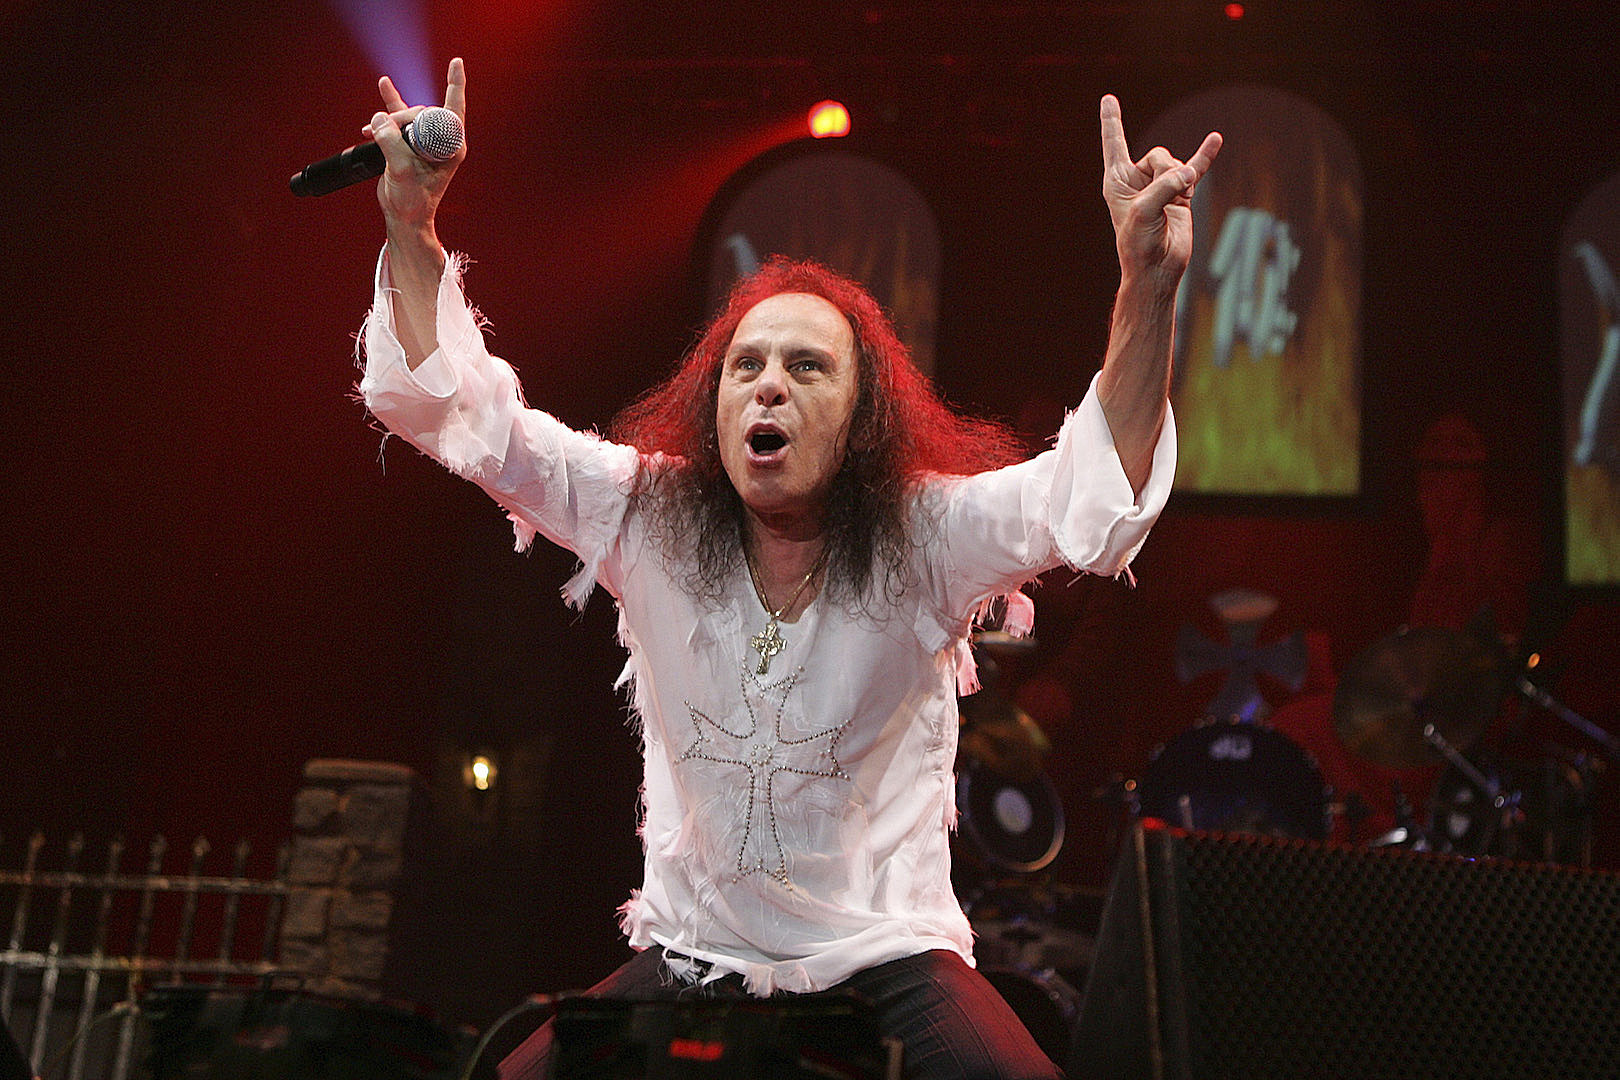 Remembering Ronnie James Dio On The 10th Anniversary Of His Death